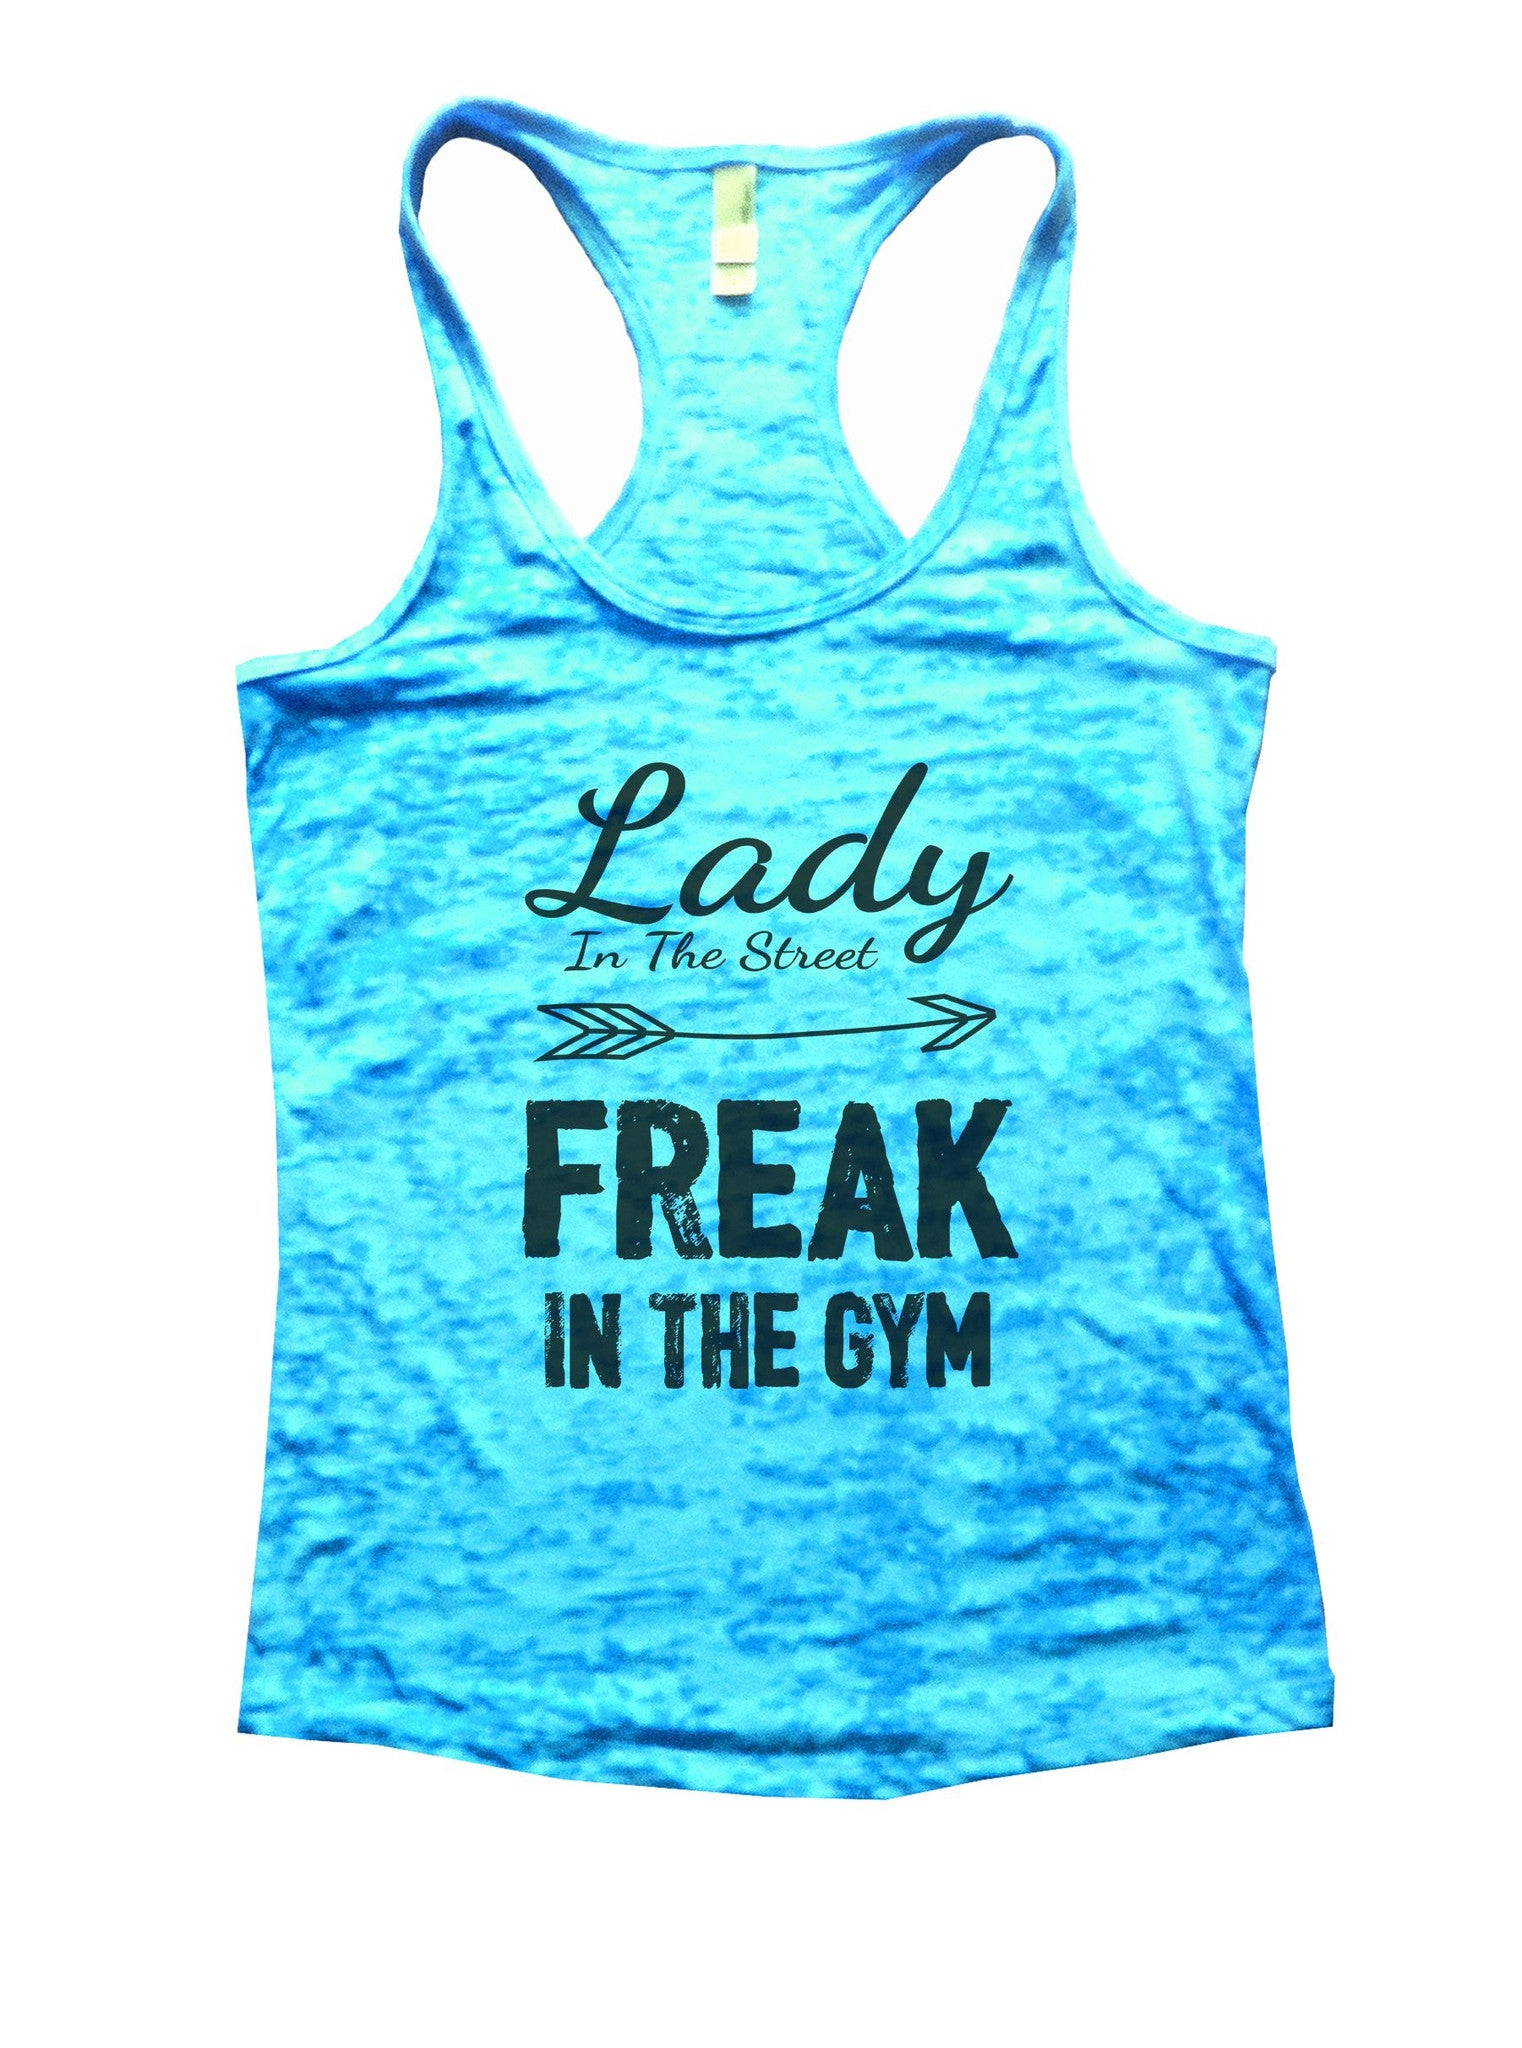 Lady In The Street Freak In The Gym Burnout Tank Top By BurnoutTankTops.com - 825 - Funny Shirts Tank Tops Burnouts and Triblends  - 4